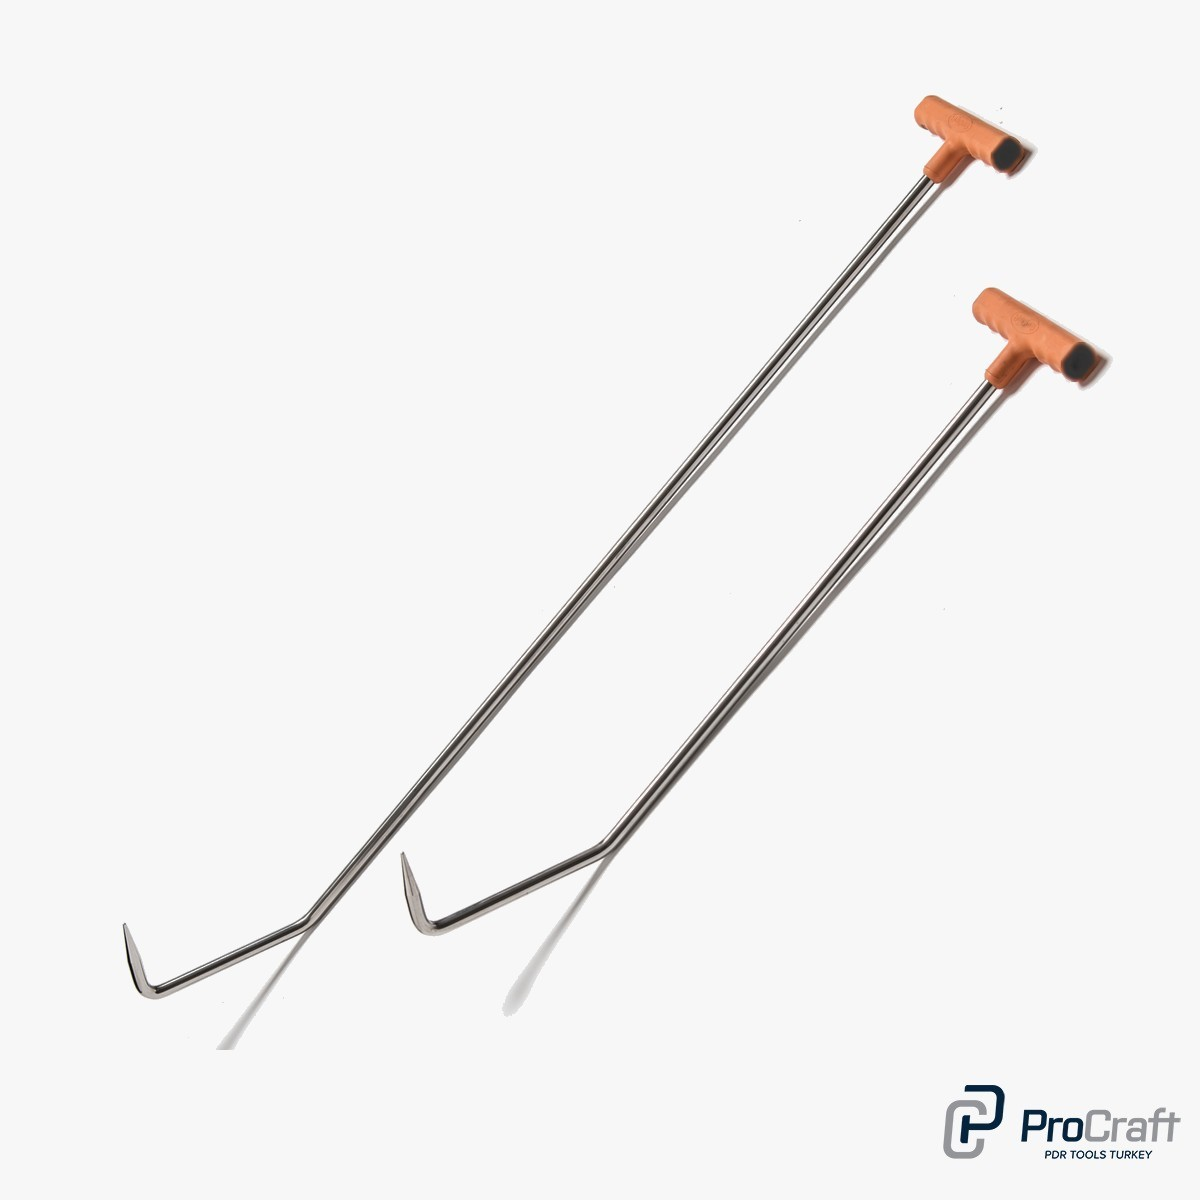 ProCraft Pdr Tools Double Bend Rood Pick Tip (Stainless steel)